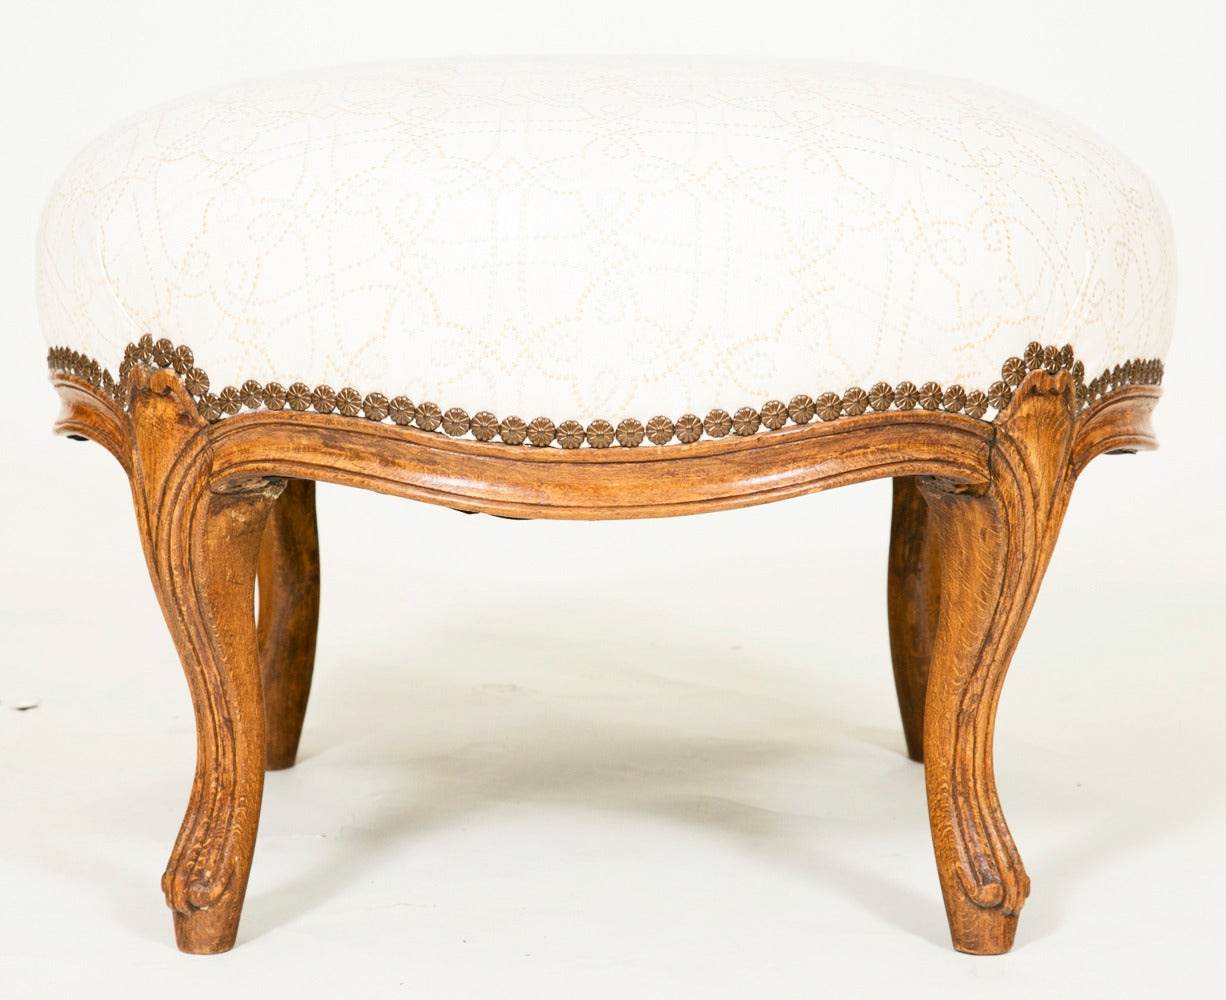 Napoleon III Stool France circa 1850 In Good Condition For Sale In San Francisco, CA